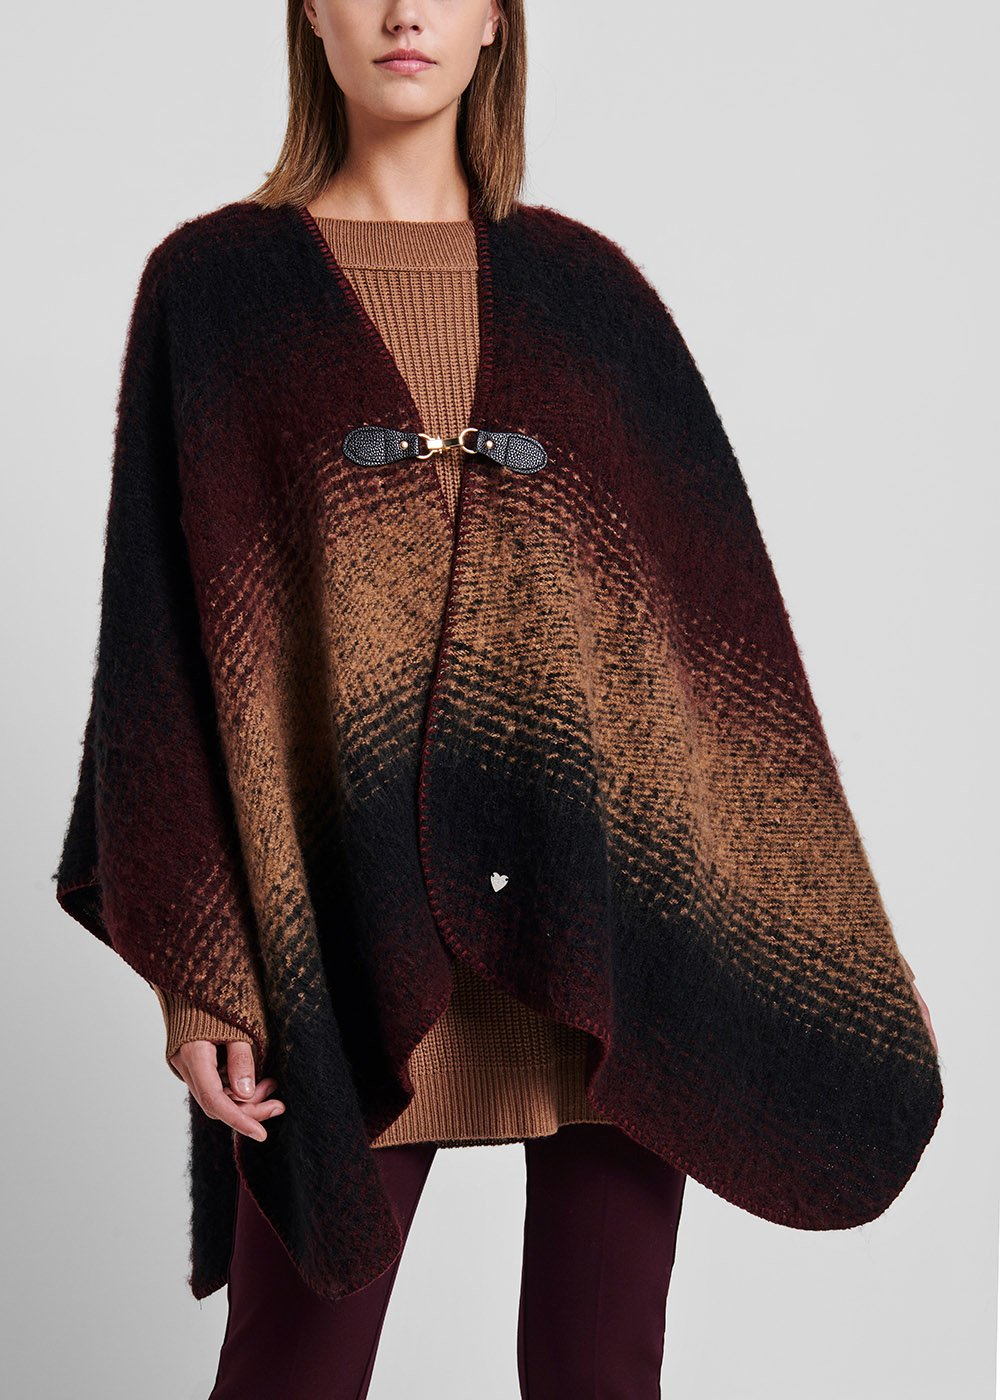 Shaded cape with faux-leather closure with hook - Amarena Black - Woman